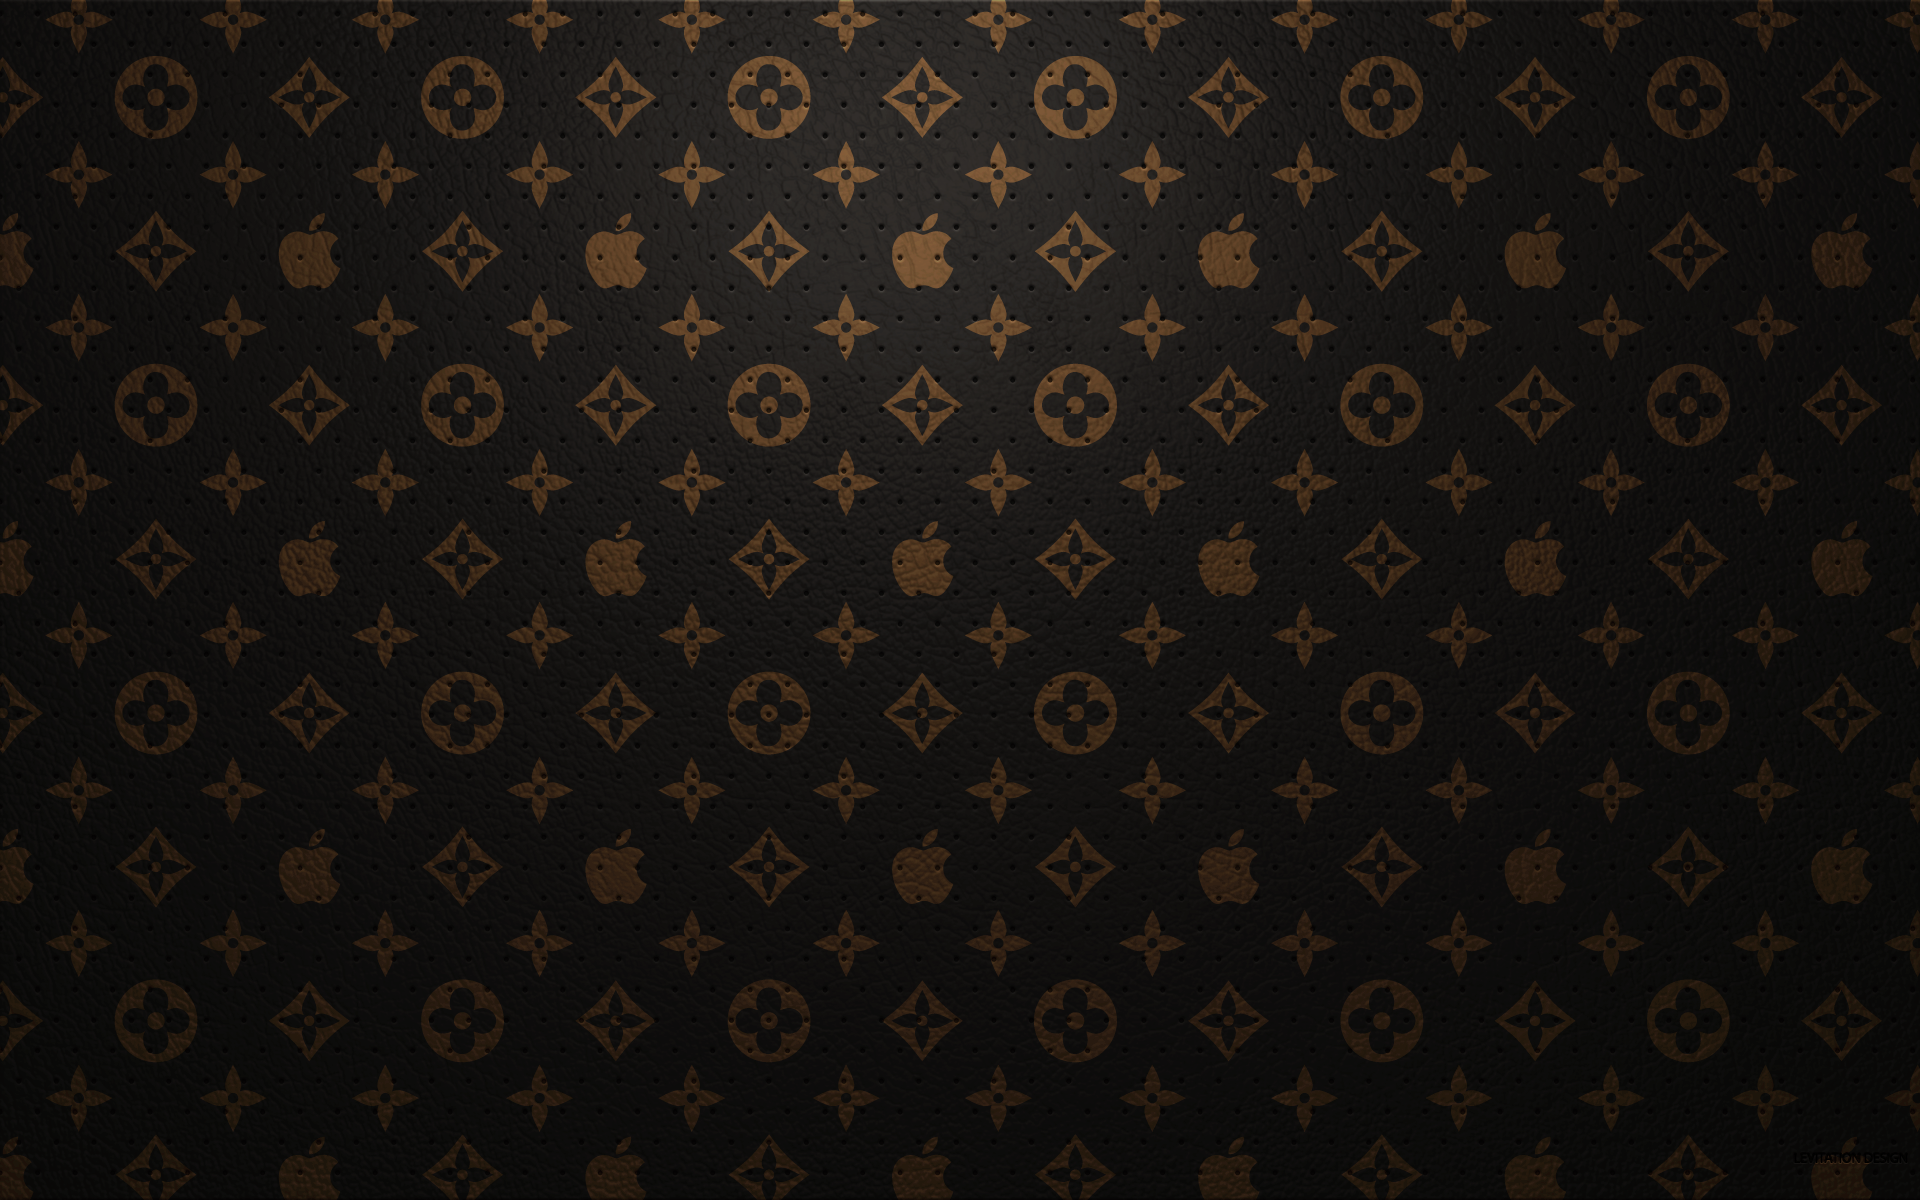 Louis vuitton wallpapers hd hd wallpapers pinterest louis vuitton wallpapers hd voltagebd Choice Image